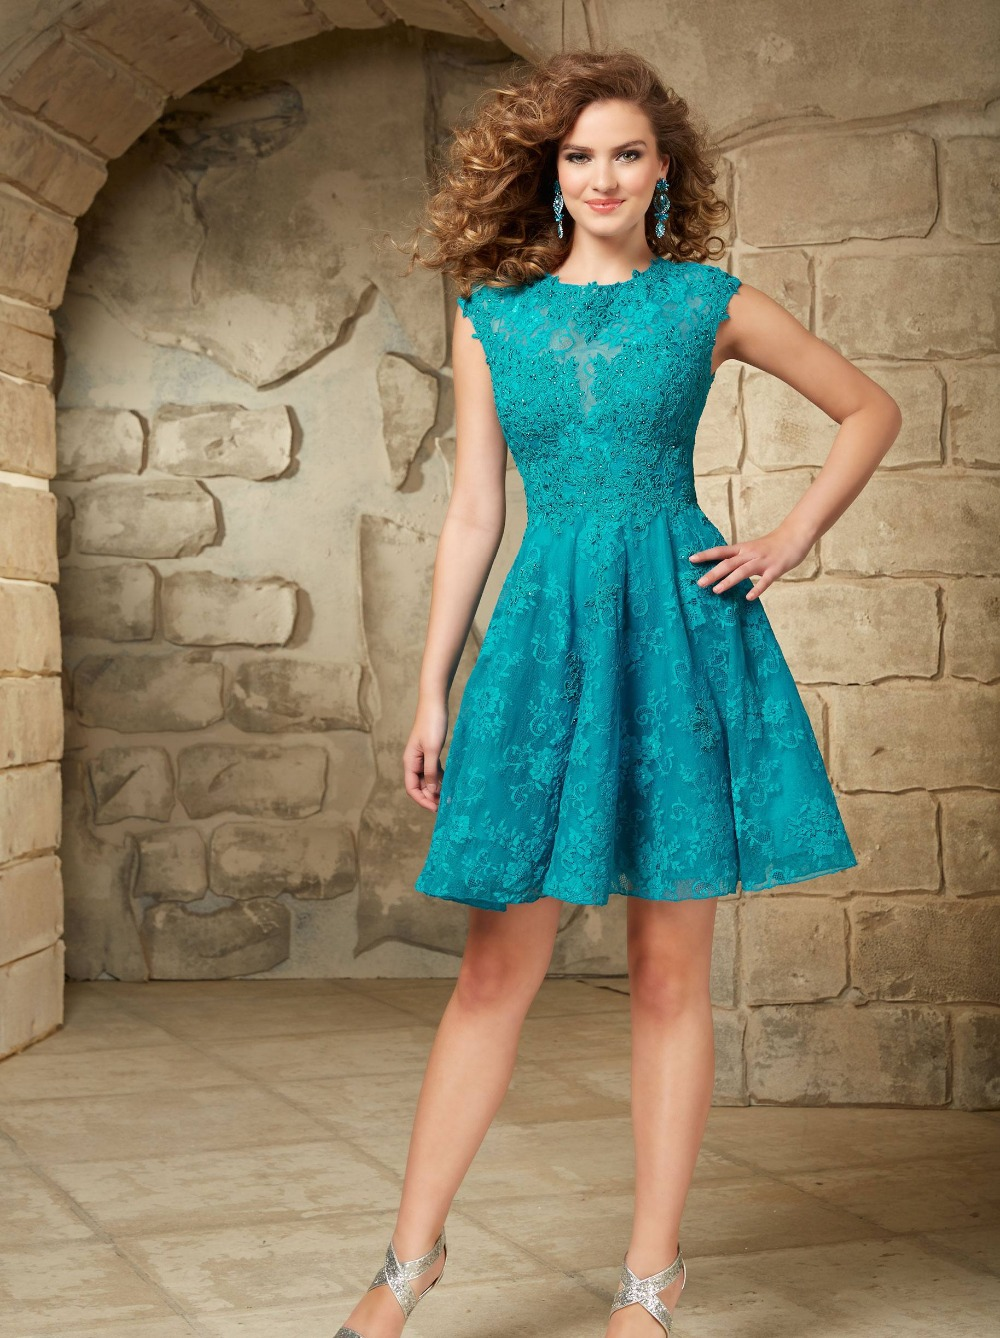 2015 Hot Teal Short Sleeve Lace Homecoming Dress Gown Open Back ...